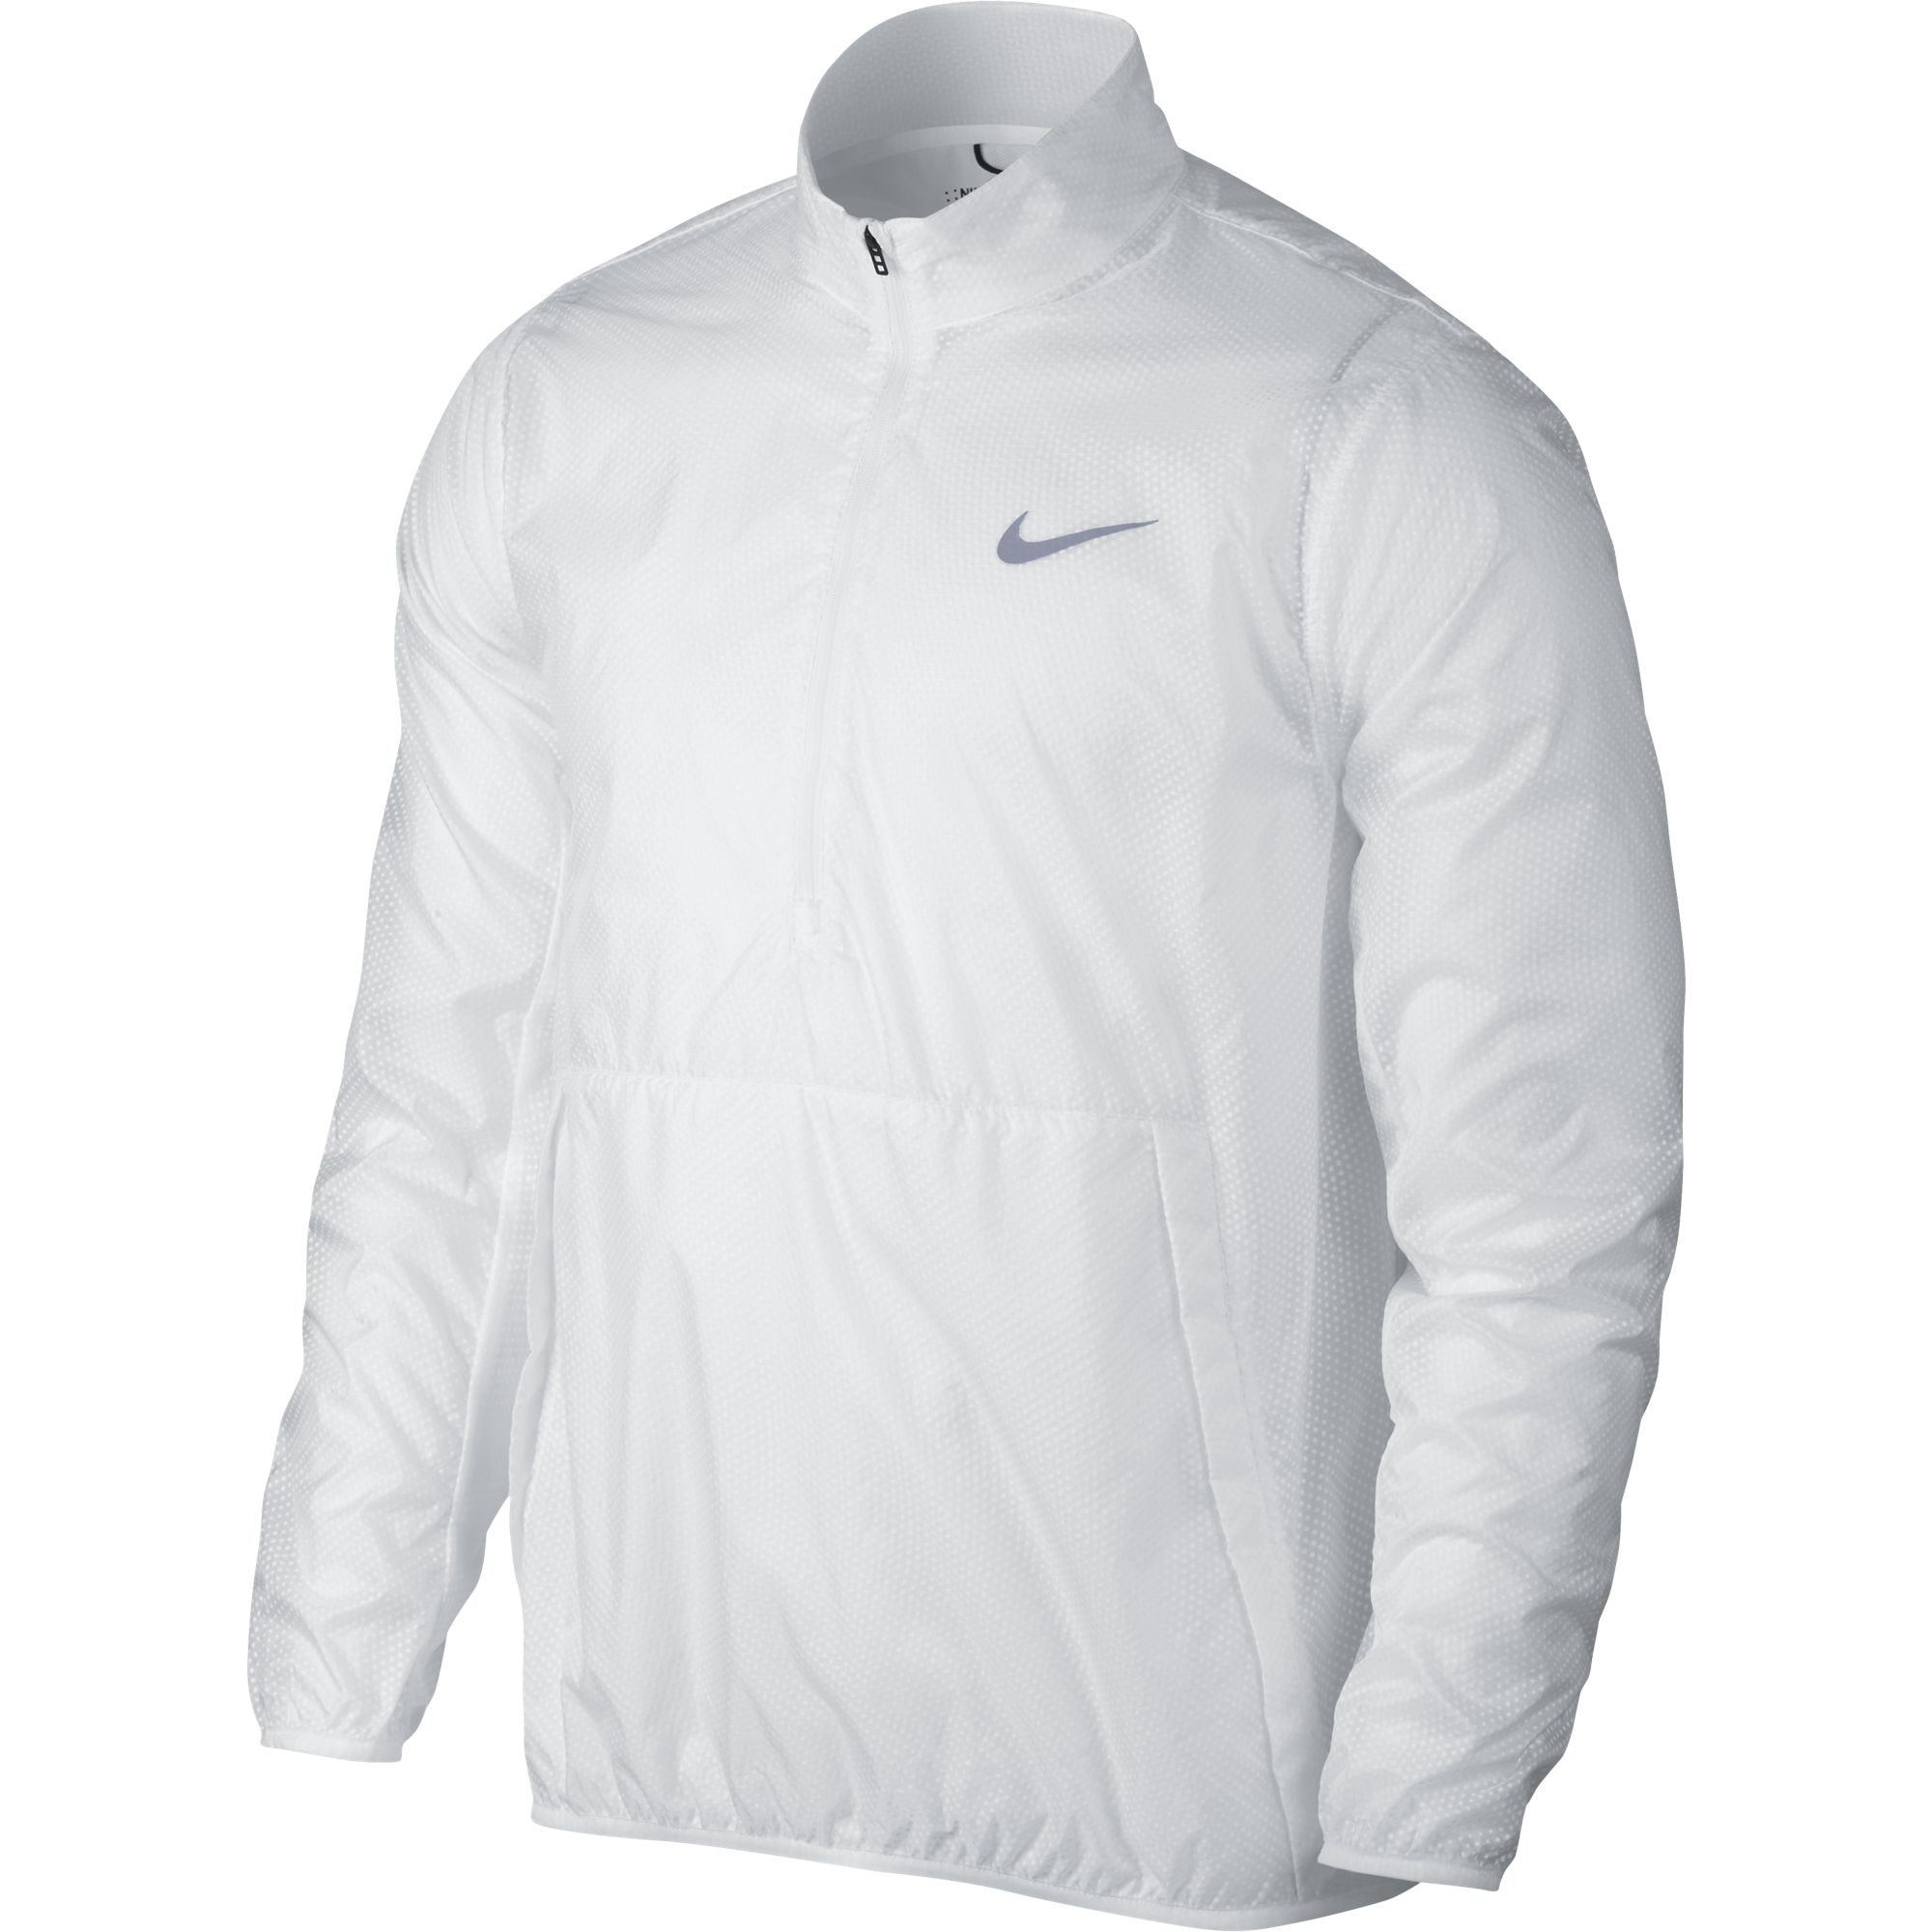 NIKE Men's HyperAdapt Shield Lite Golf Jacket-824604-100-S